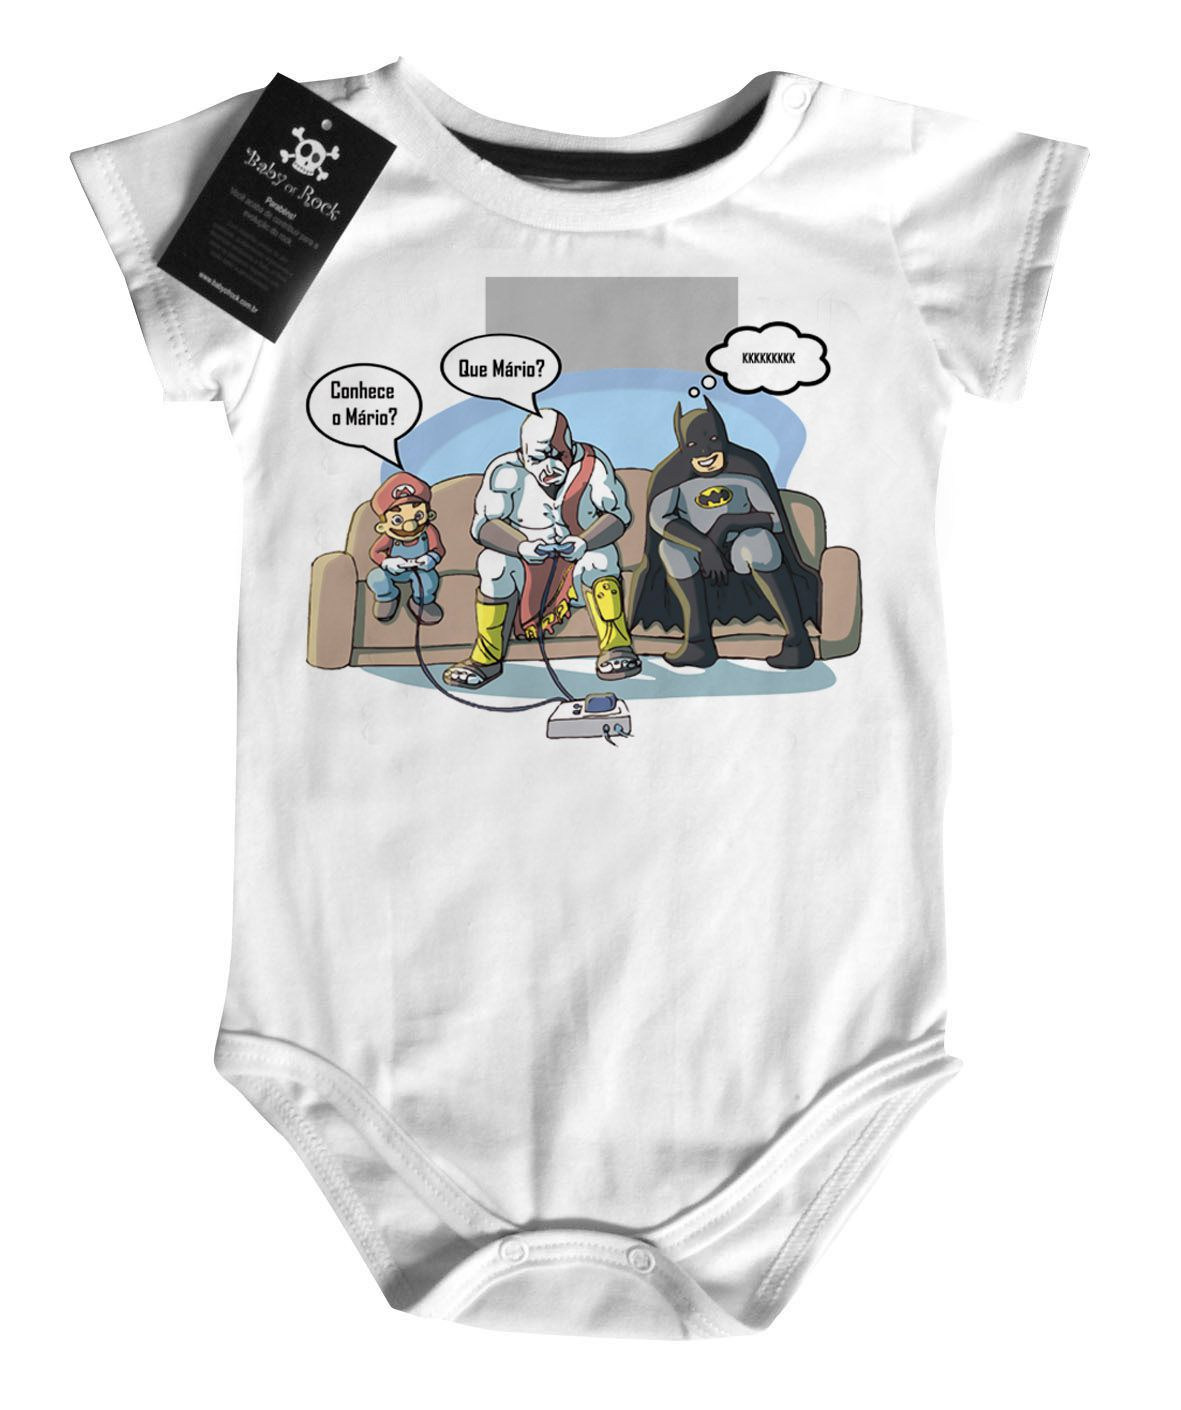 Body Bebê Super Gamer-  White - Mario / Batman  - Baby Monster - Body Bebe